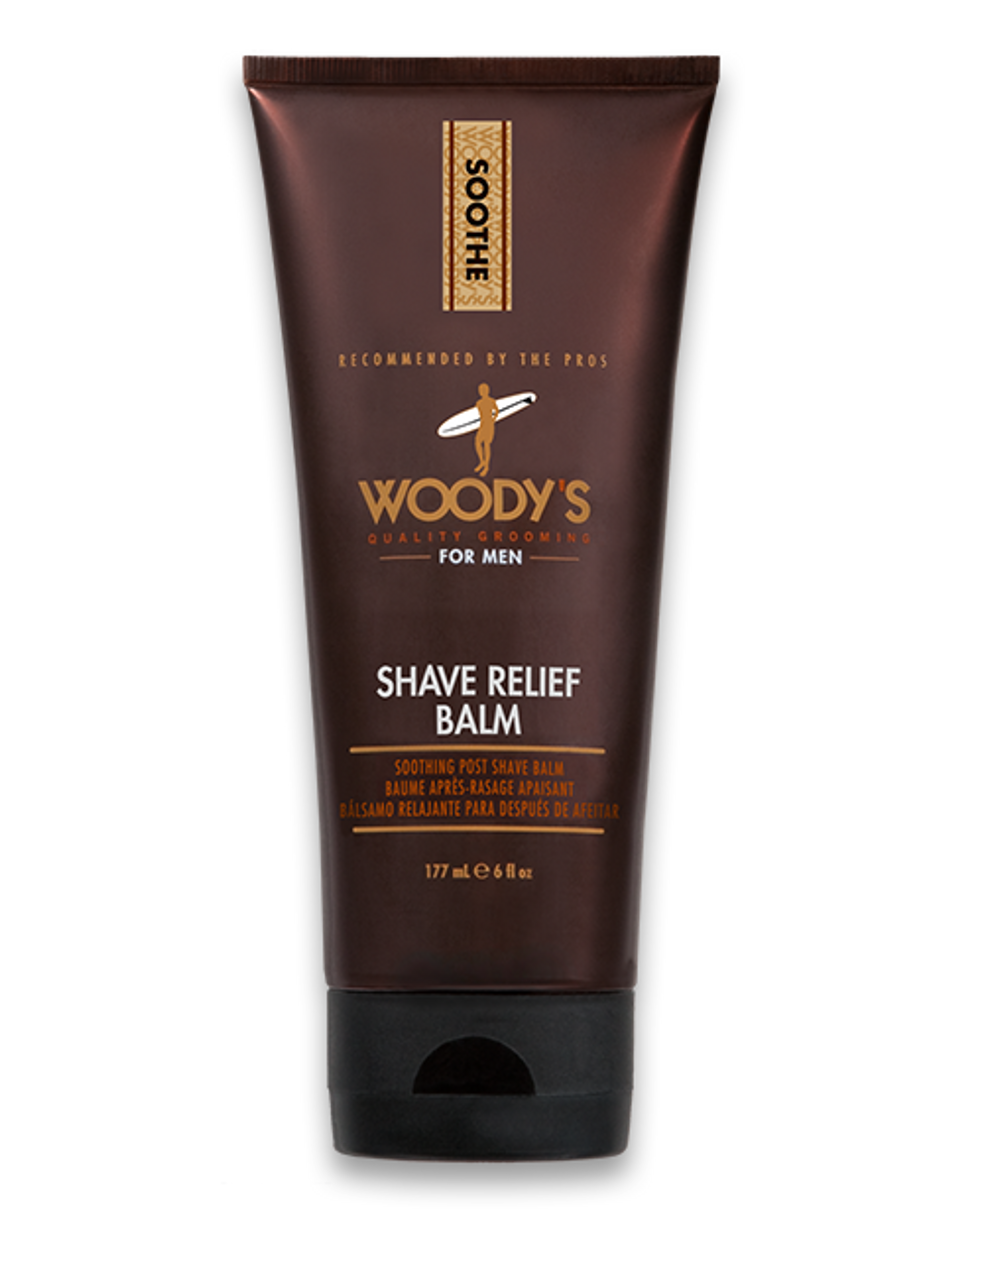 Woody's Shave Relief Balm